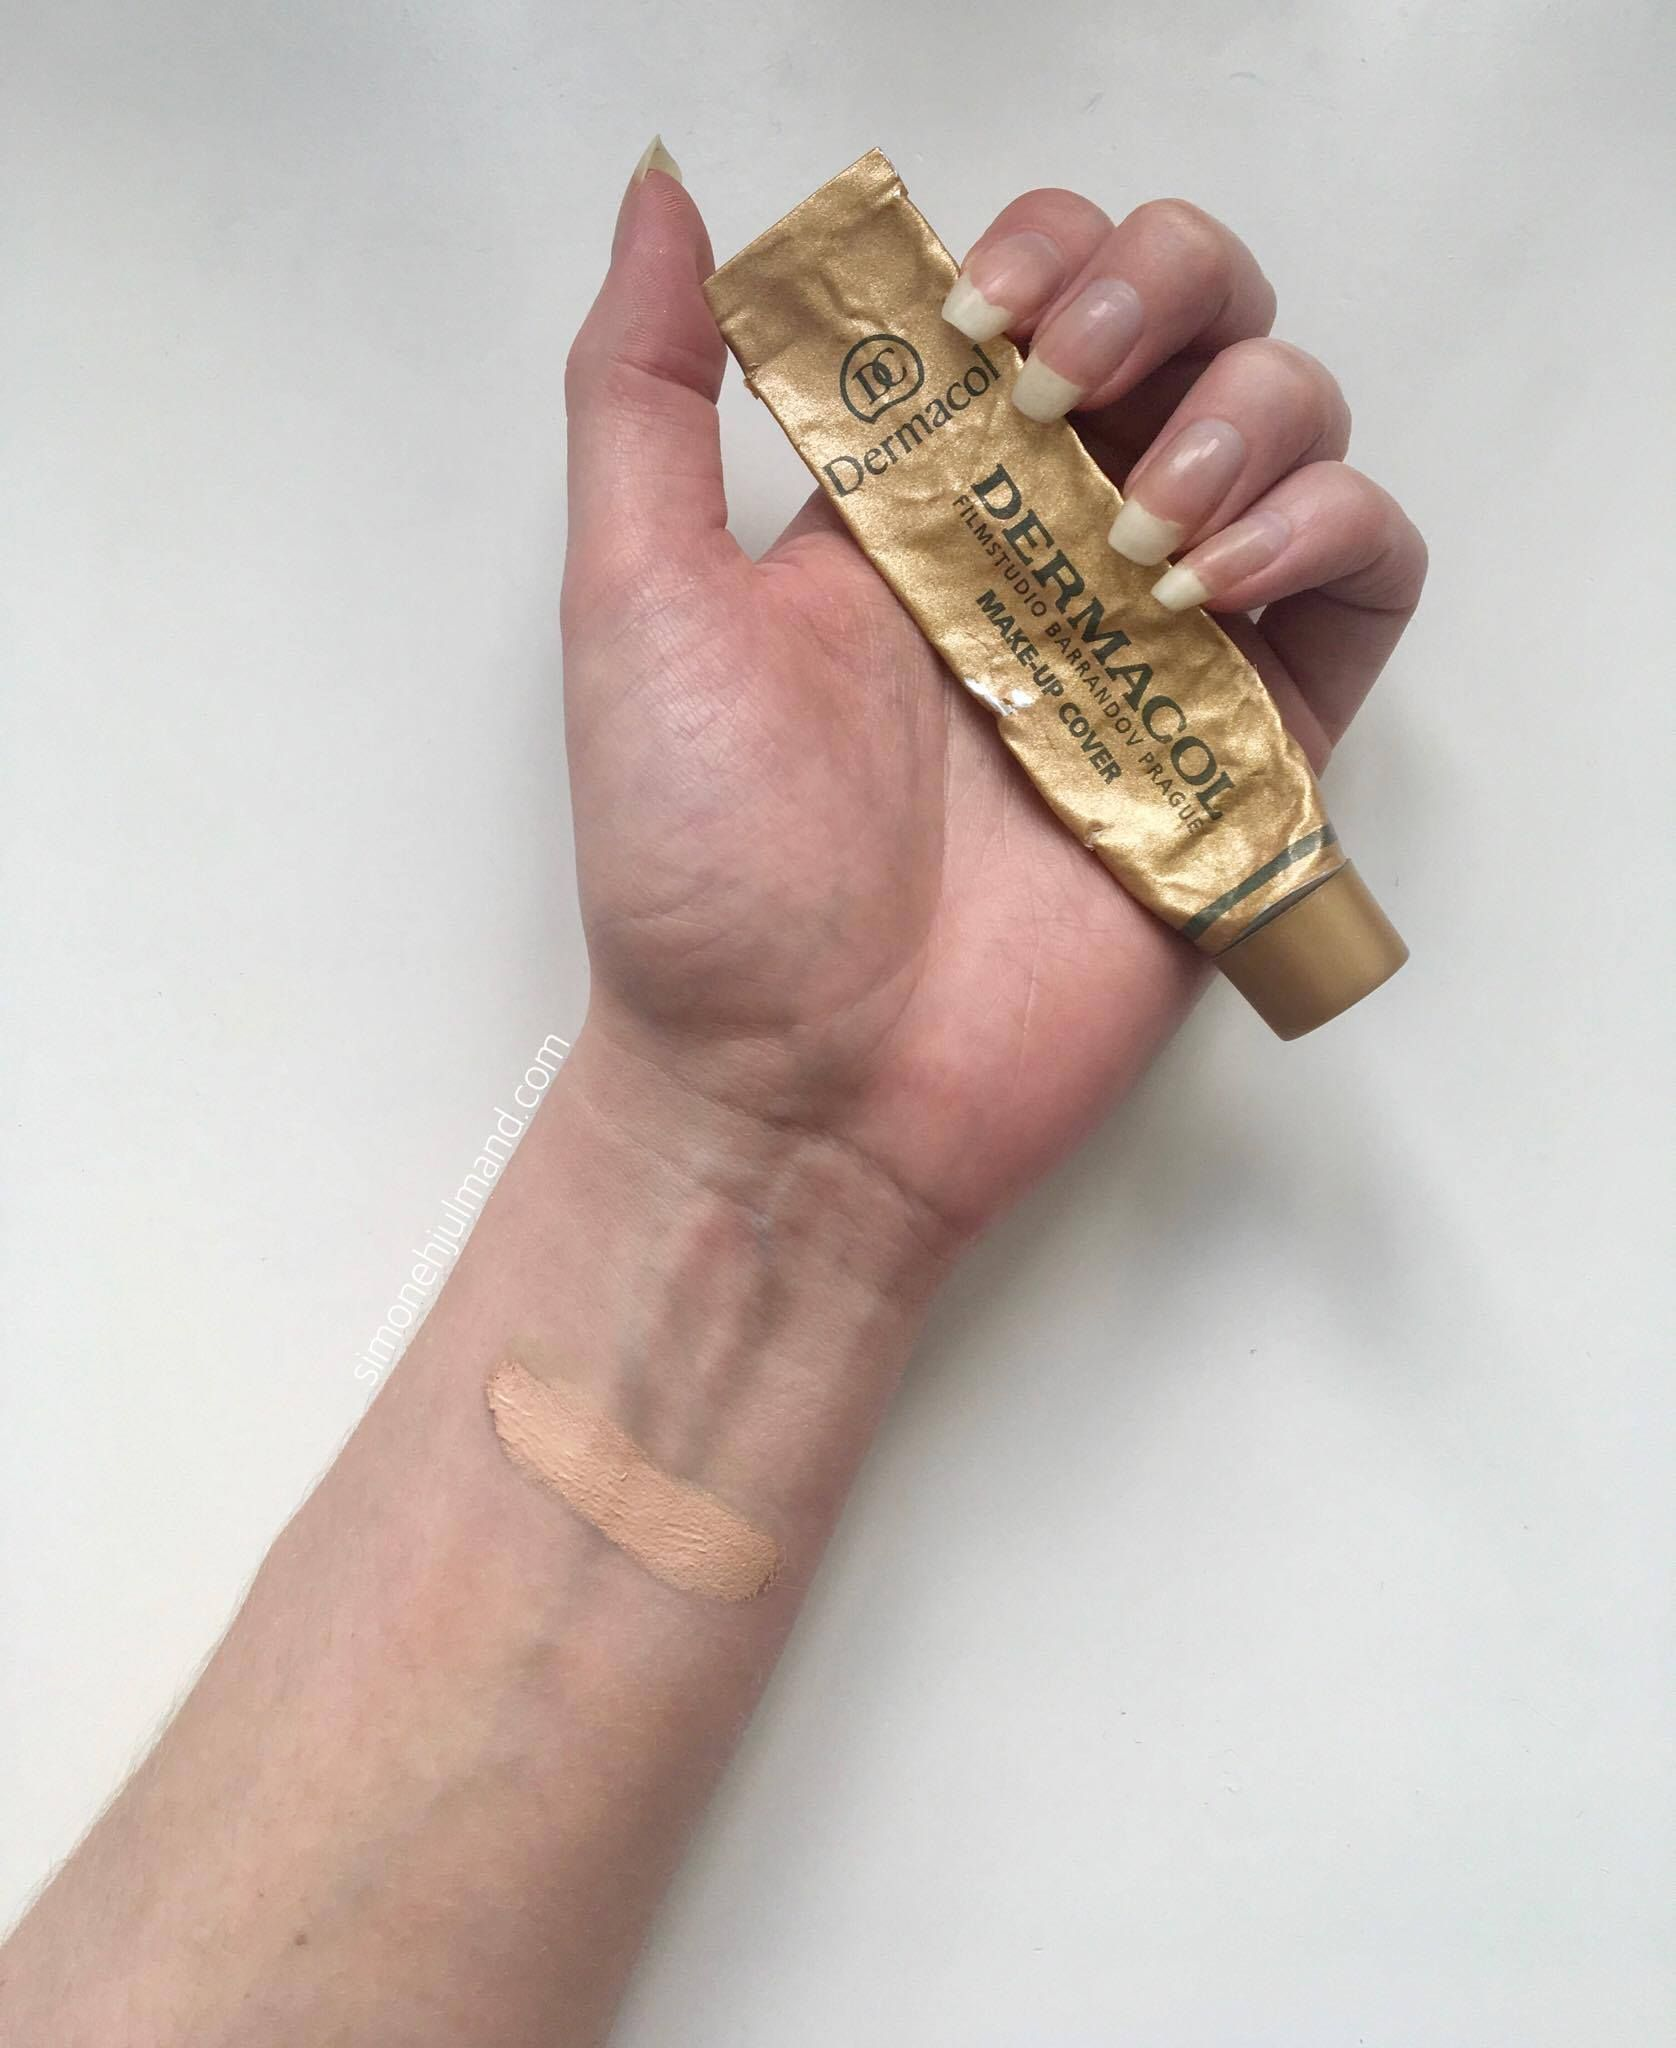 Review of the Makeup Cover Foundation from Dermacol